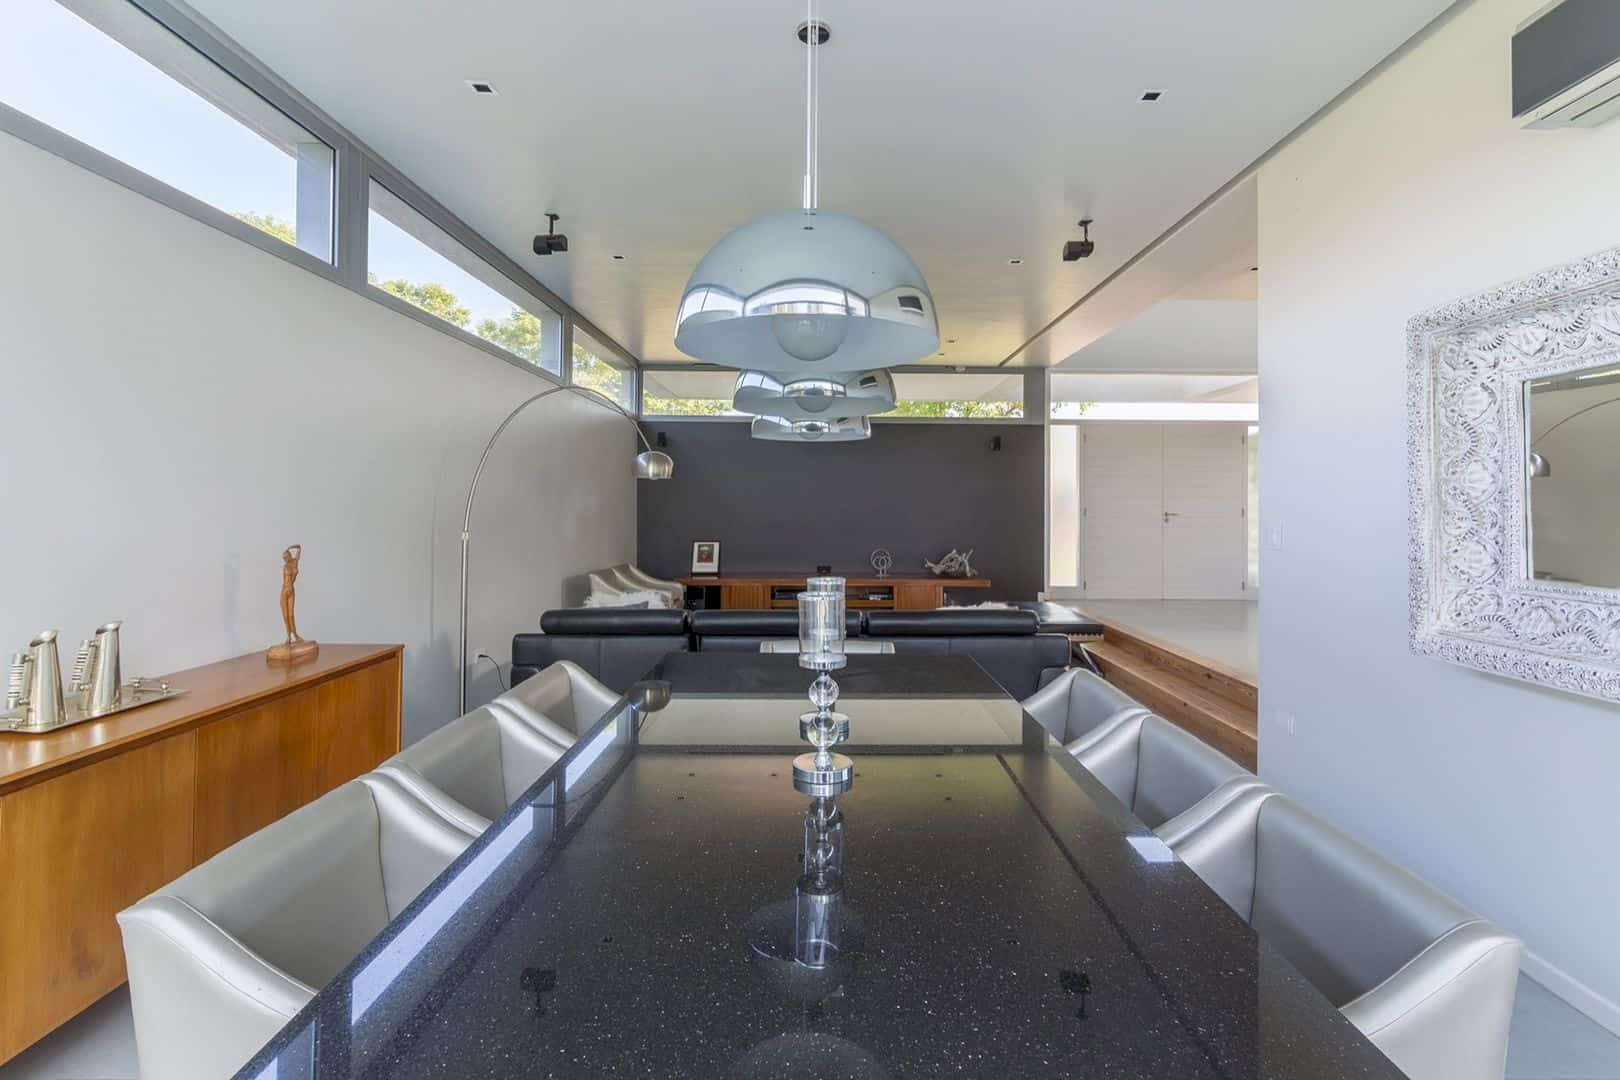 House In El Paso Enhancing The Relationship Inside With The Surrounding Landscape 3